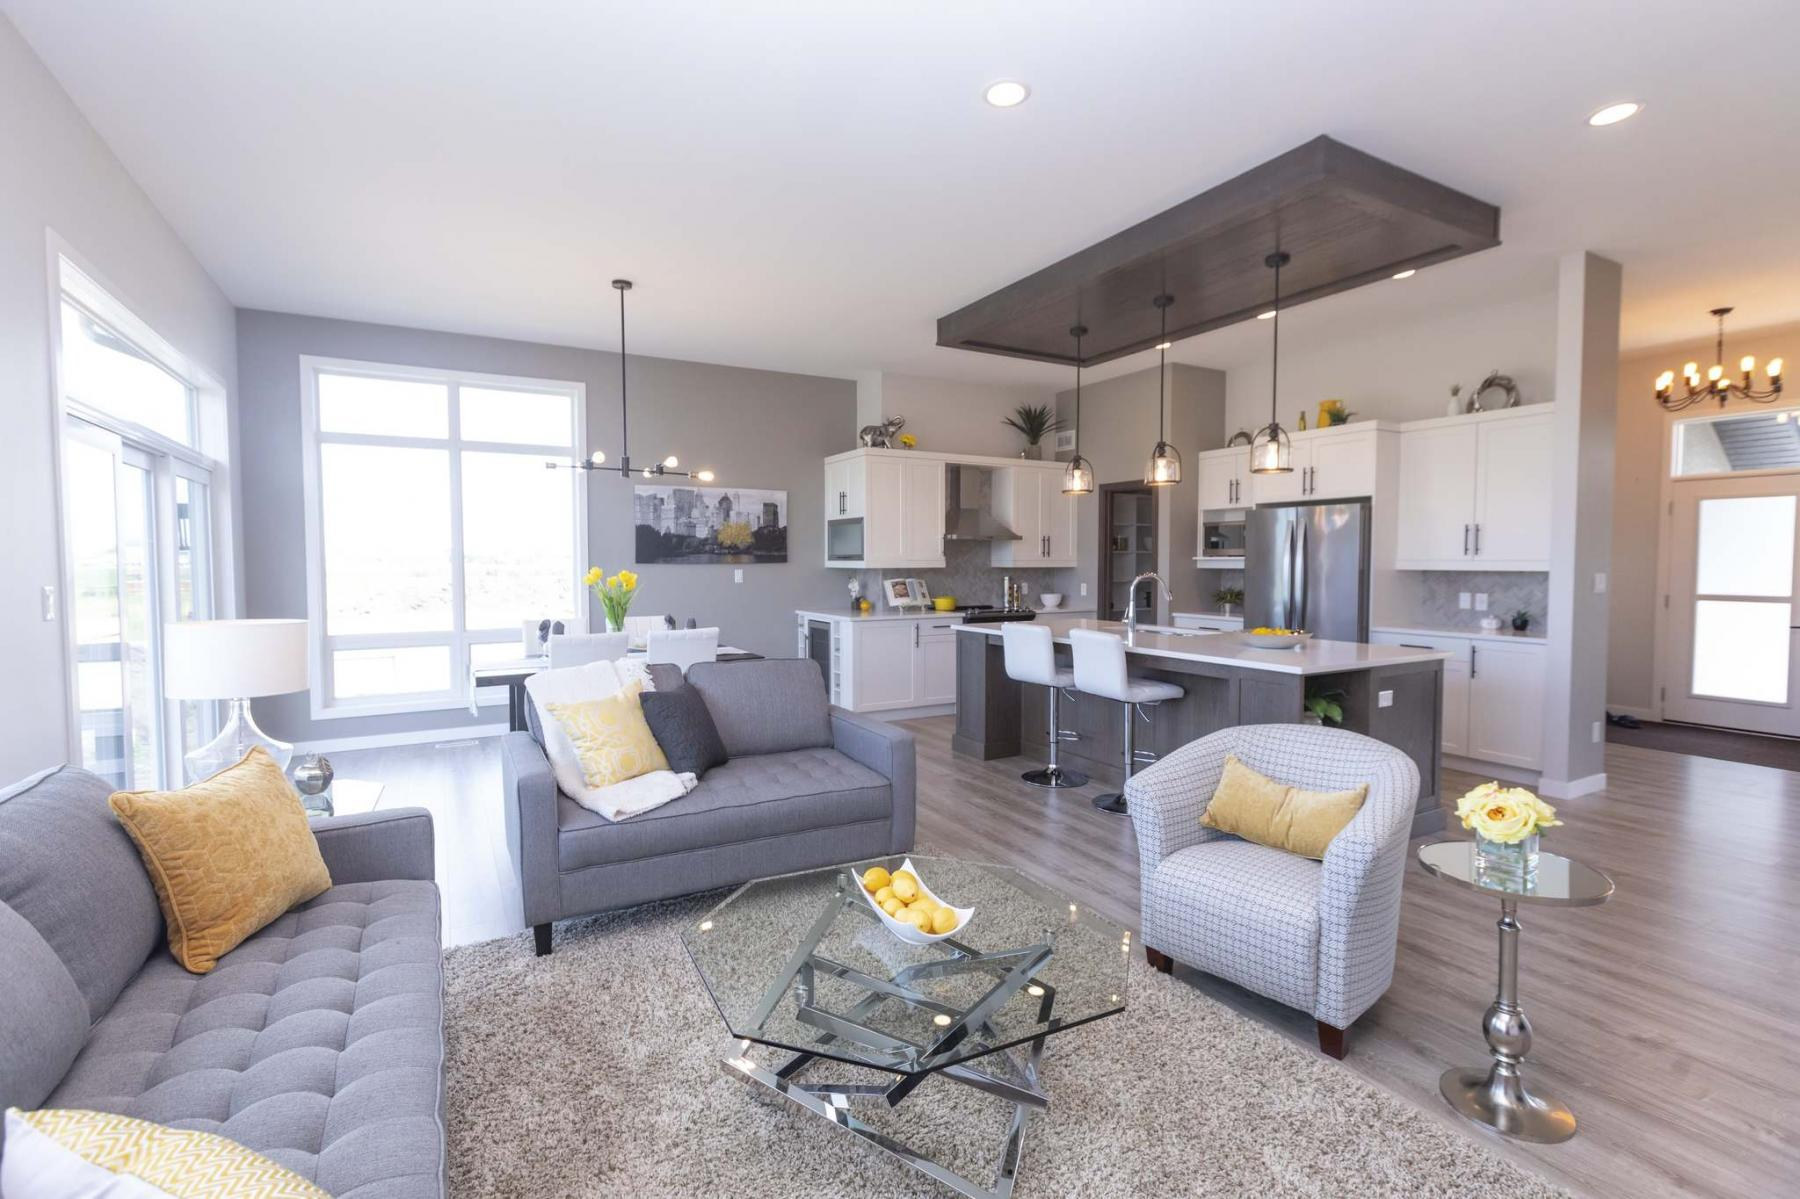 <p>SASHA SEFTER / WINNIPEG FREE PRESS</p><p>The bright and spacious great room of a new show home located at 22 Southdown Lane in Headingley. The master suite is set off to the right, while the house's left wing holds two bedrooms and a four-piece bath.</p></p>